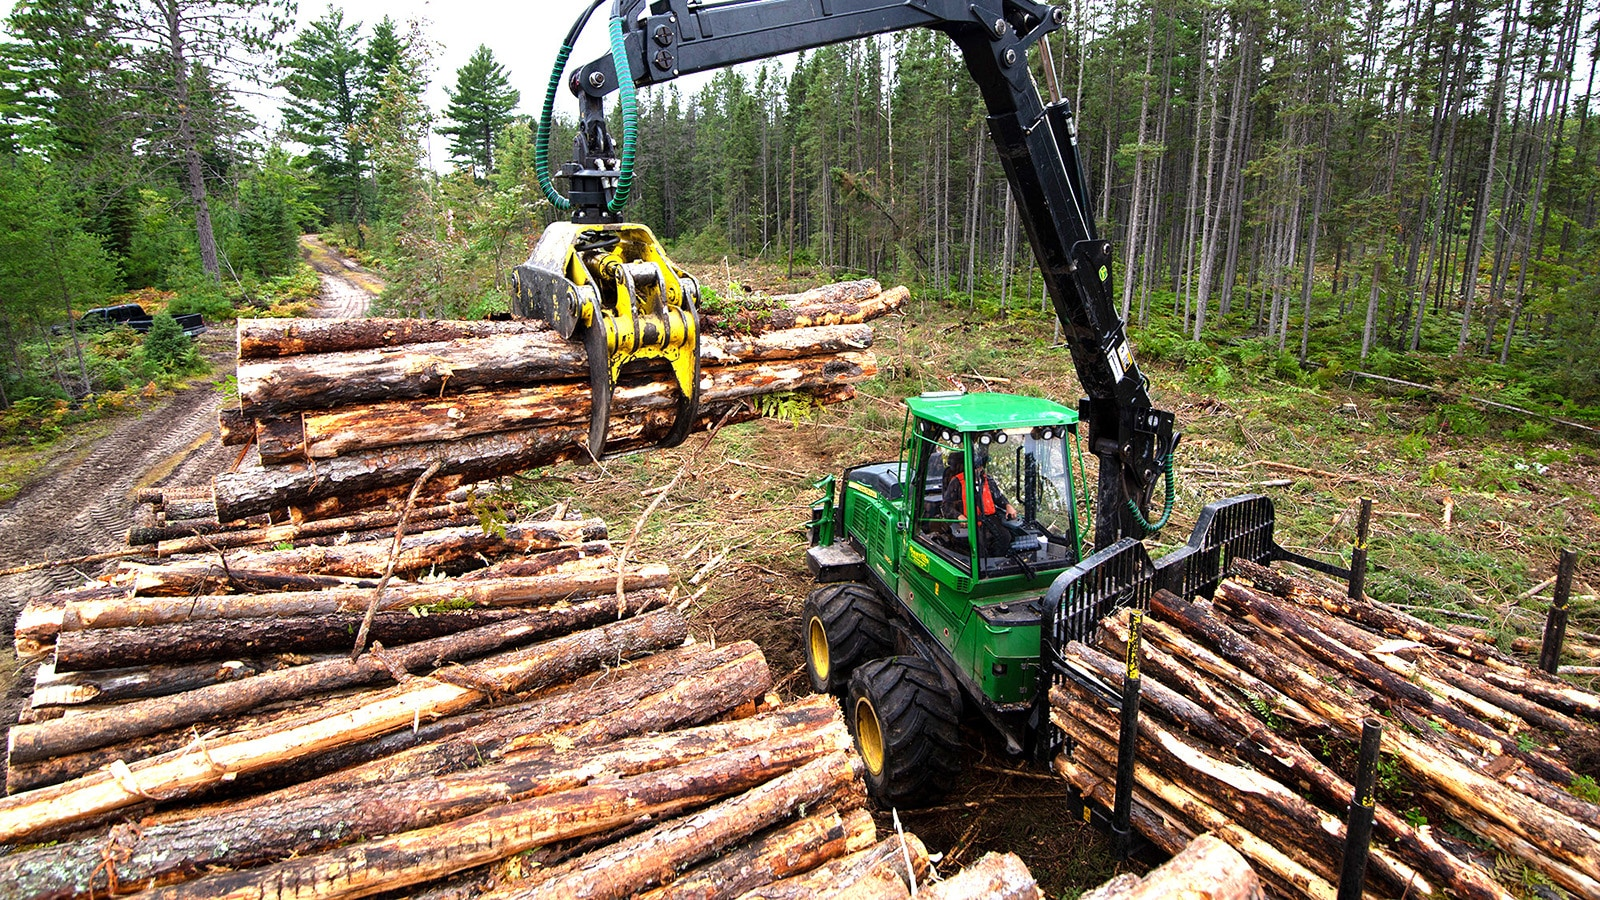 A forestry forwarder loads a grapple-full of wood from a pile onto the log bed of the machine.